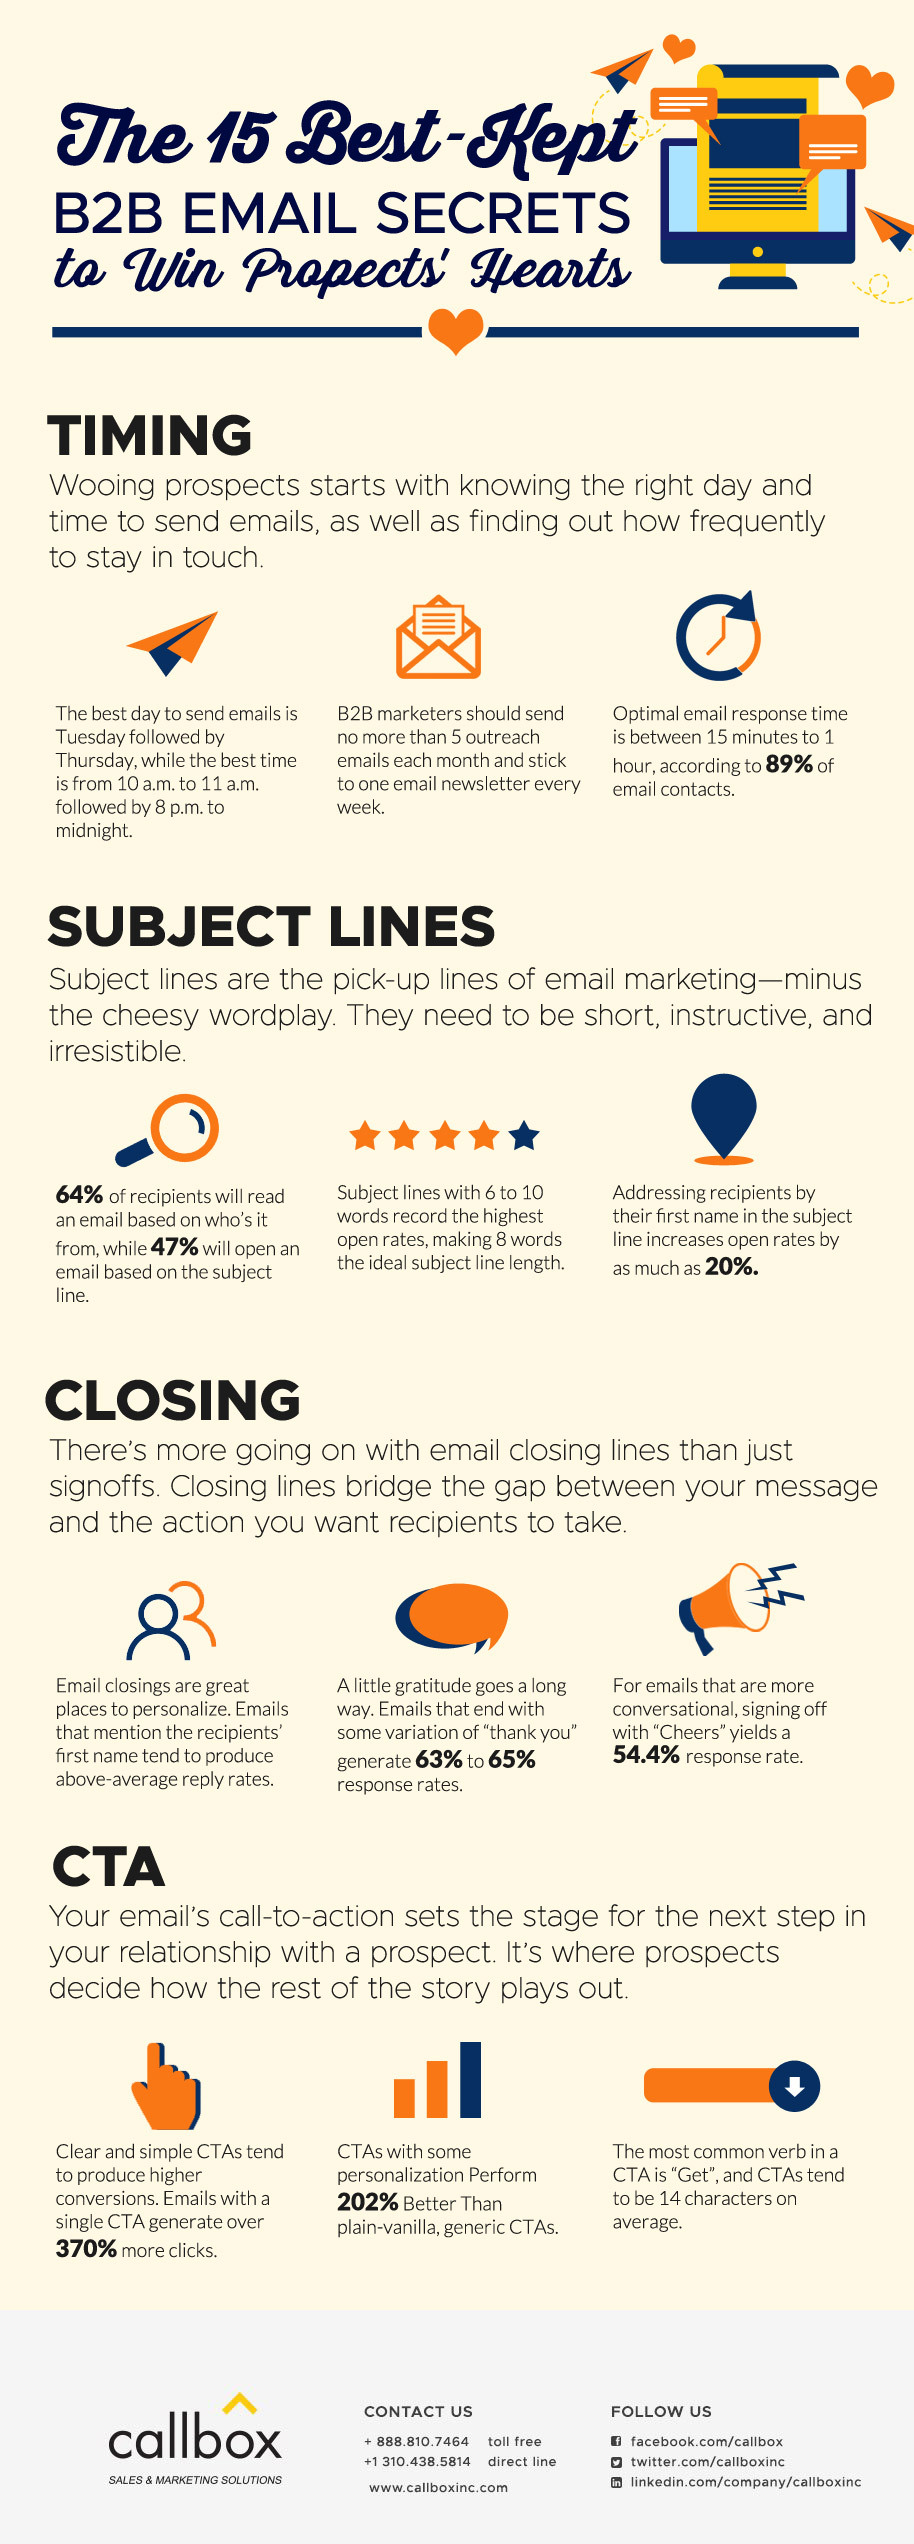 Infographic-The-15-Best-Kept-B2B-Email-Secrets-to-Win-Prospects-Hearts